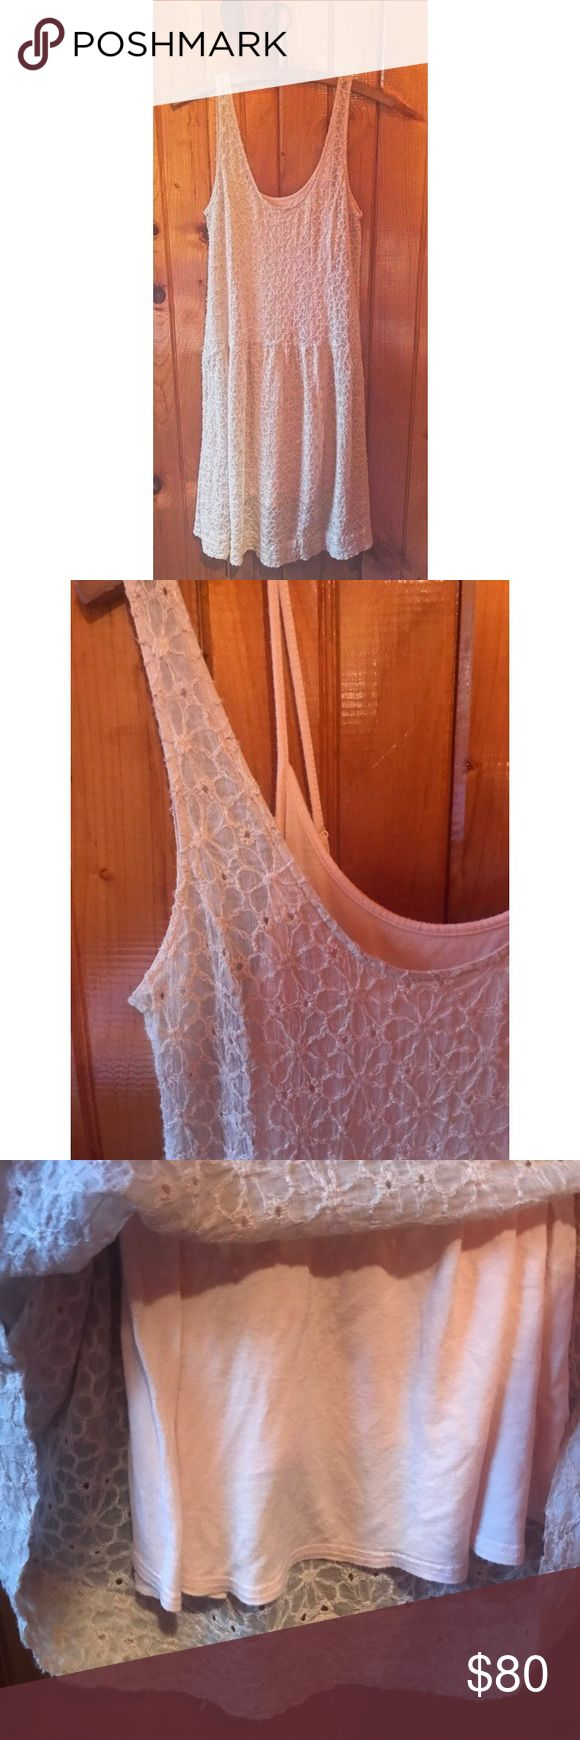 Free People Lace Overlay Dress + Slip ✨NWOT NEVER WORN ✨Perfect condition ✨Light pink color ✨Super comfortable! ✨PACKAGE DEAL INCLUDES FP PINK SLIP! (will not separate) ✨Flower pattern on lace ✨Solid light pink slip ✨Vintage style, very trendy! Free People Dresses Midi